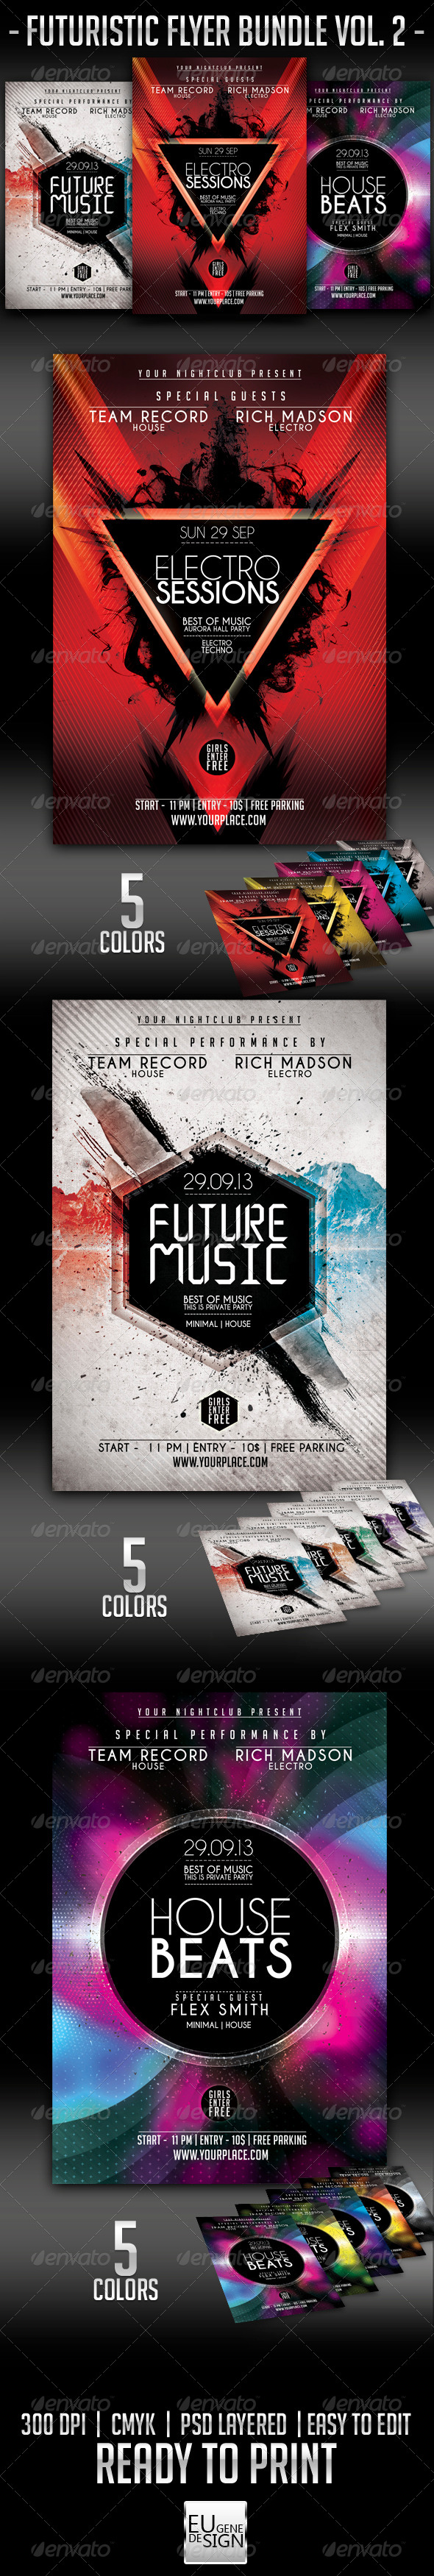 Futuristic Flyer Bundle Vol. 2 - Clubs & Parties Events